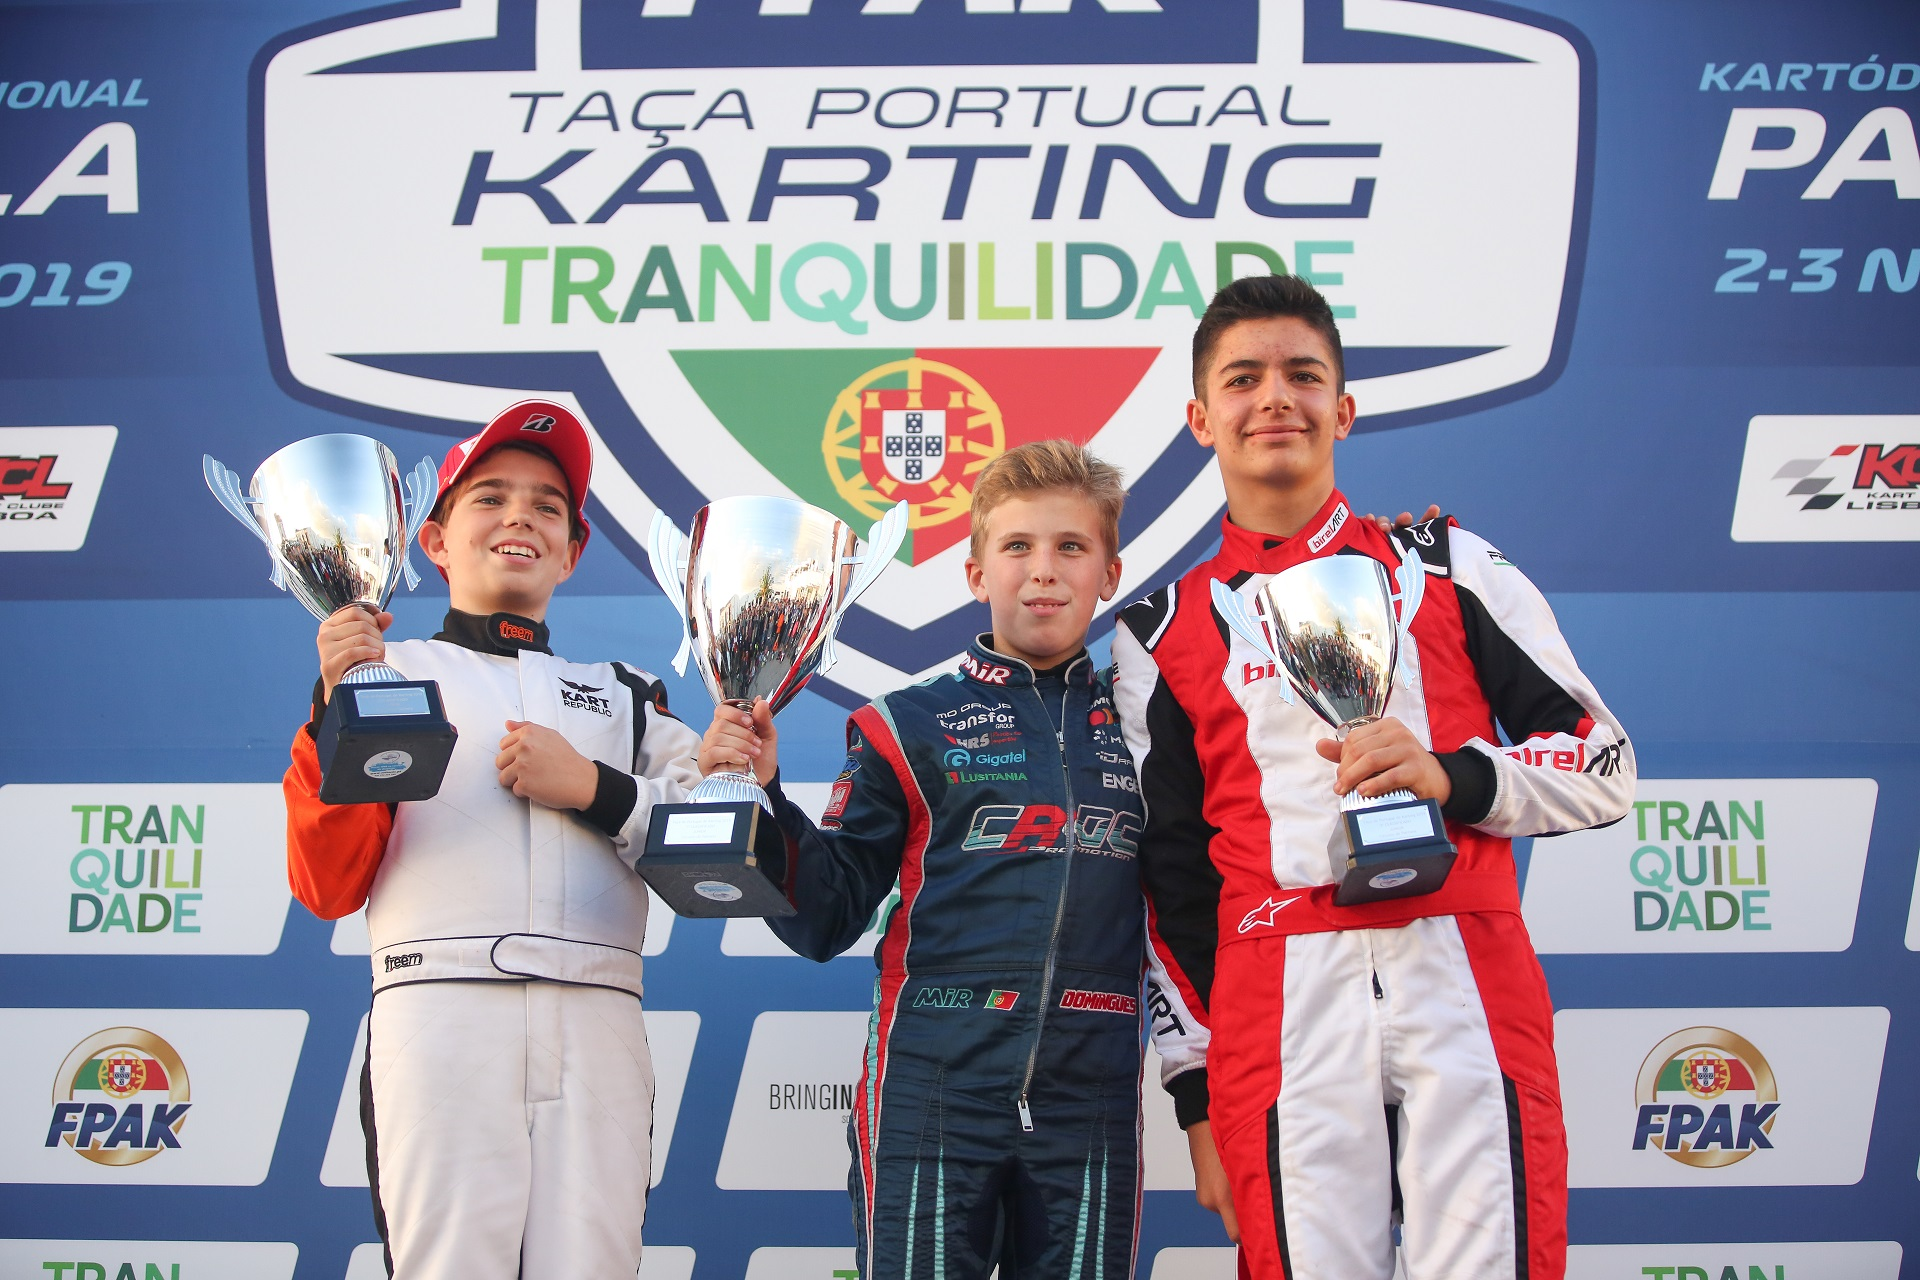 Ivan Domingues coleciona segunda Taça de Portugal de Karting na categoria Júnior